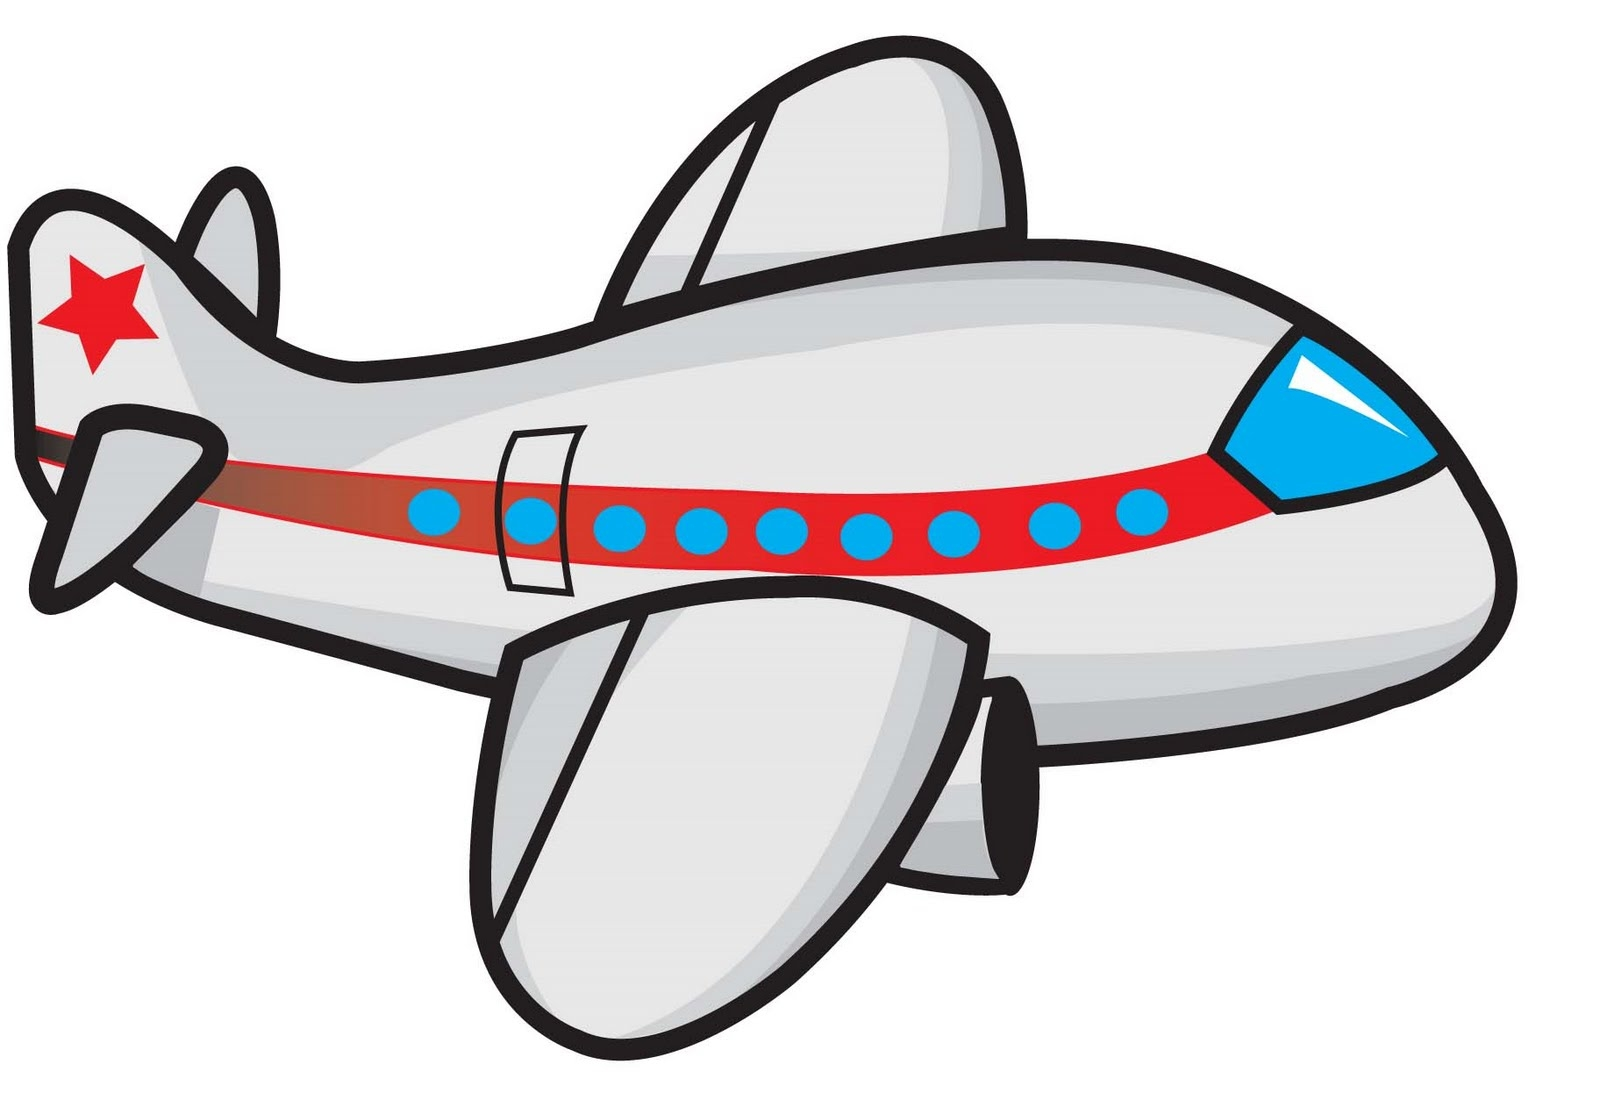 airplane clipart at getdrawings com free for personal use airplane rh getdrawings com airplane clip art free airplane clip art free